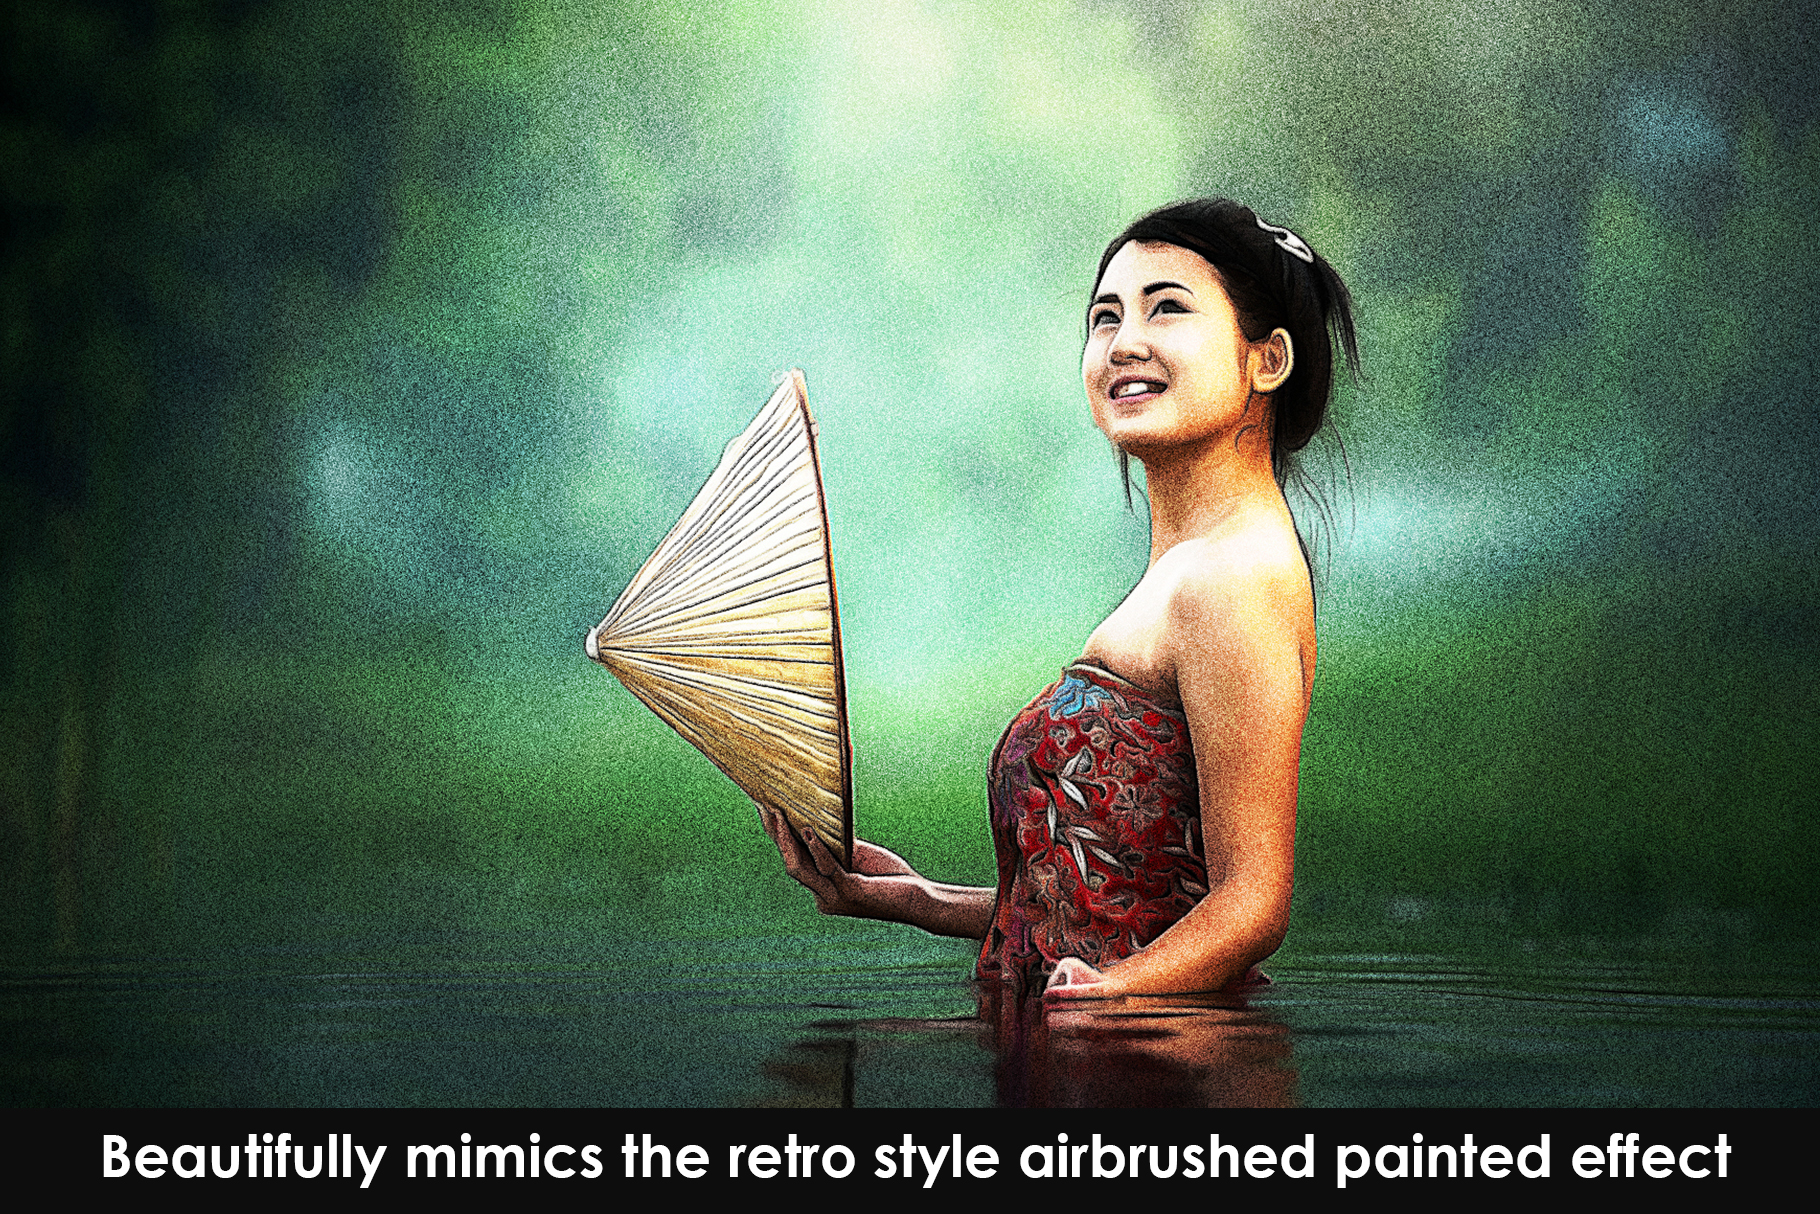 Airbrush Poster Photoshop Action example image 2